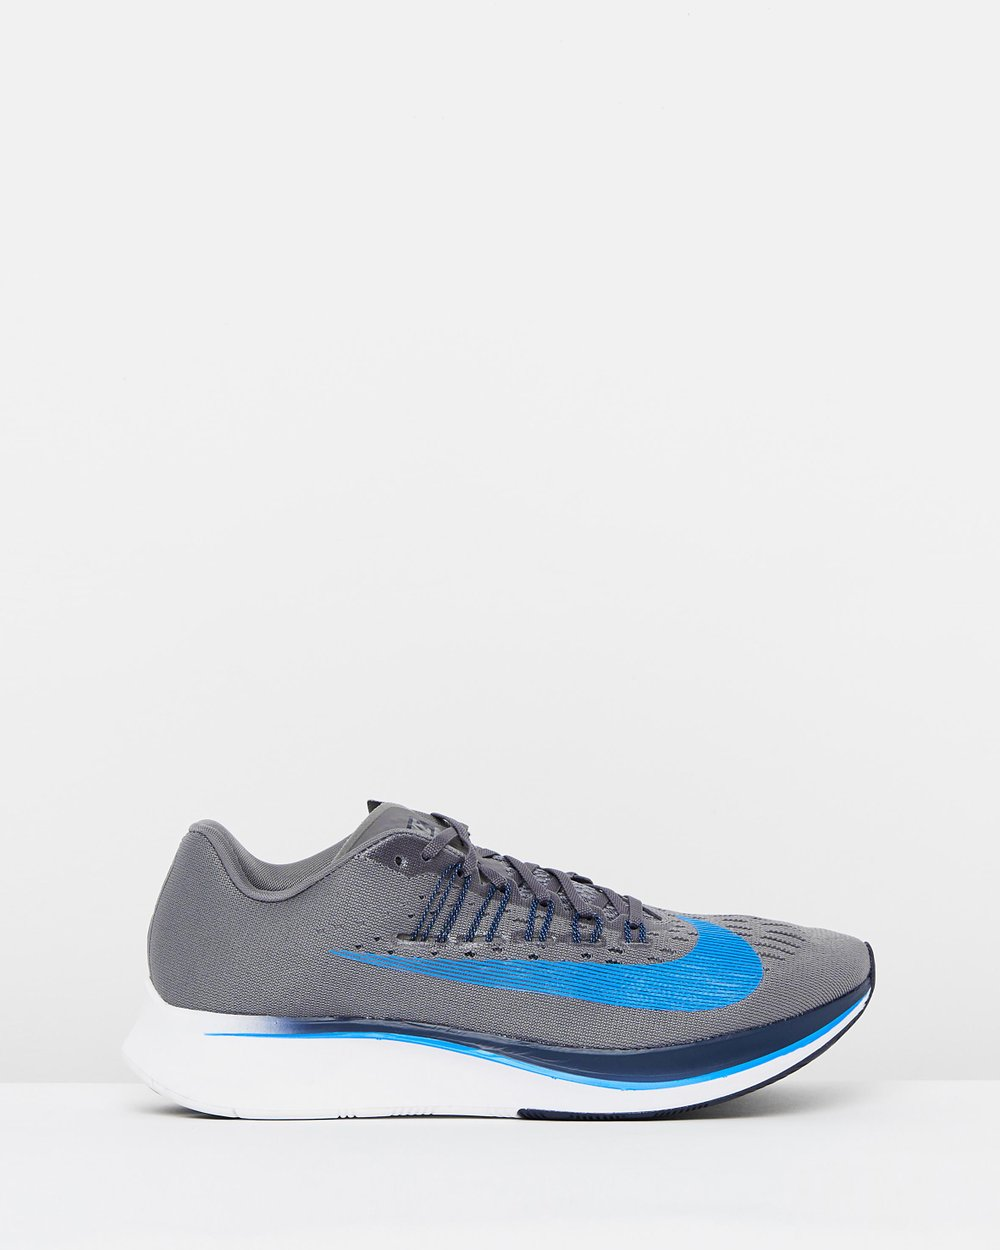 6afc4ec625048 Zoom Fly Running Shoes - Men s by Nike Online